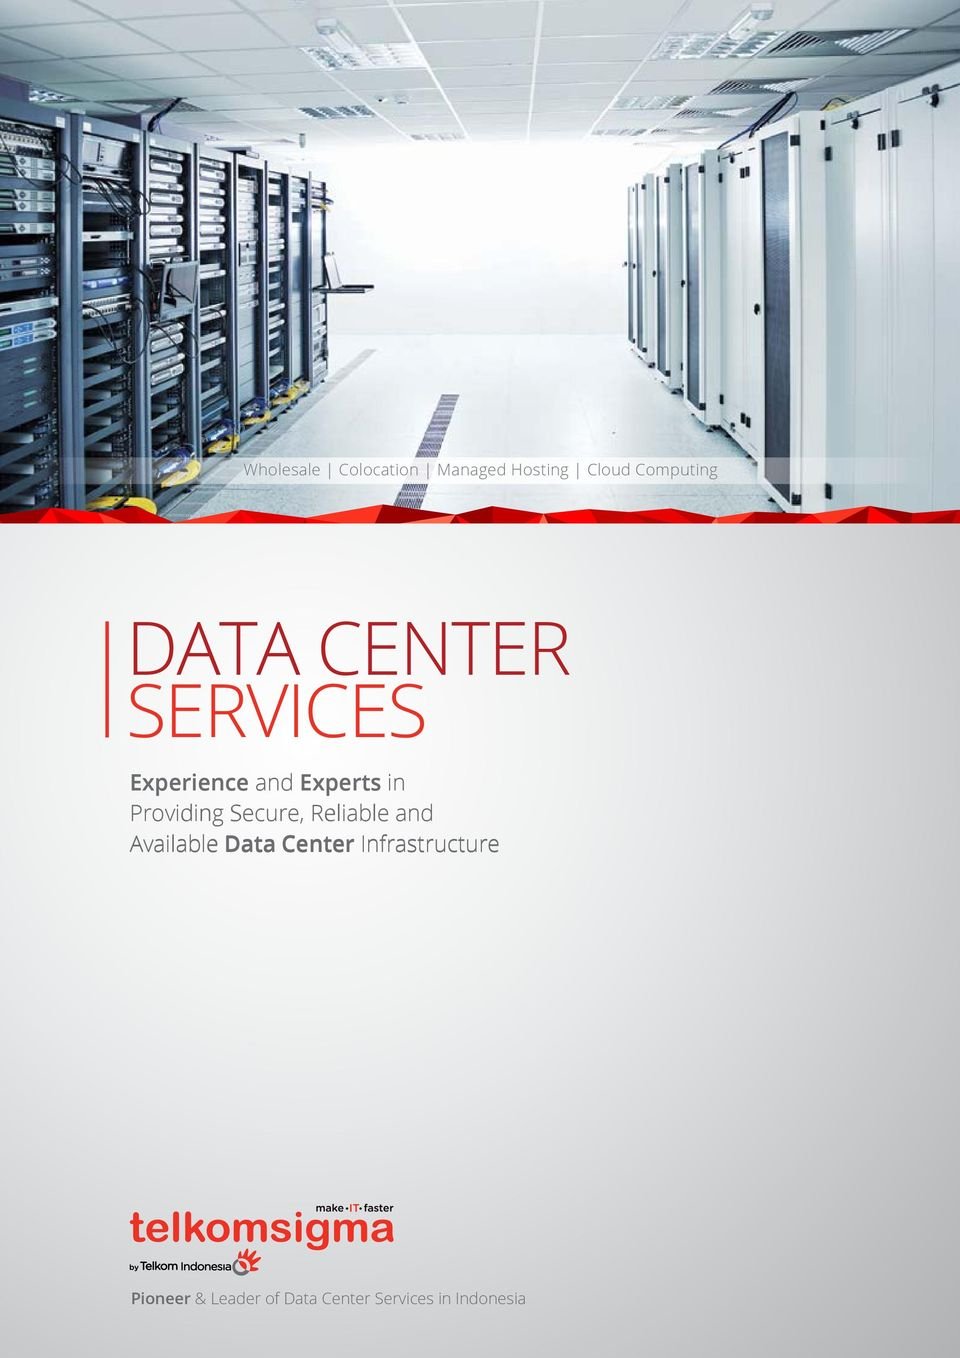 Providing Secure, Reliable and Available Data Center